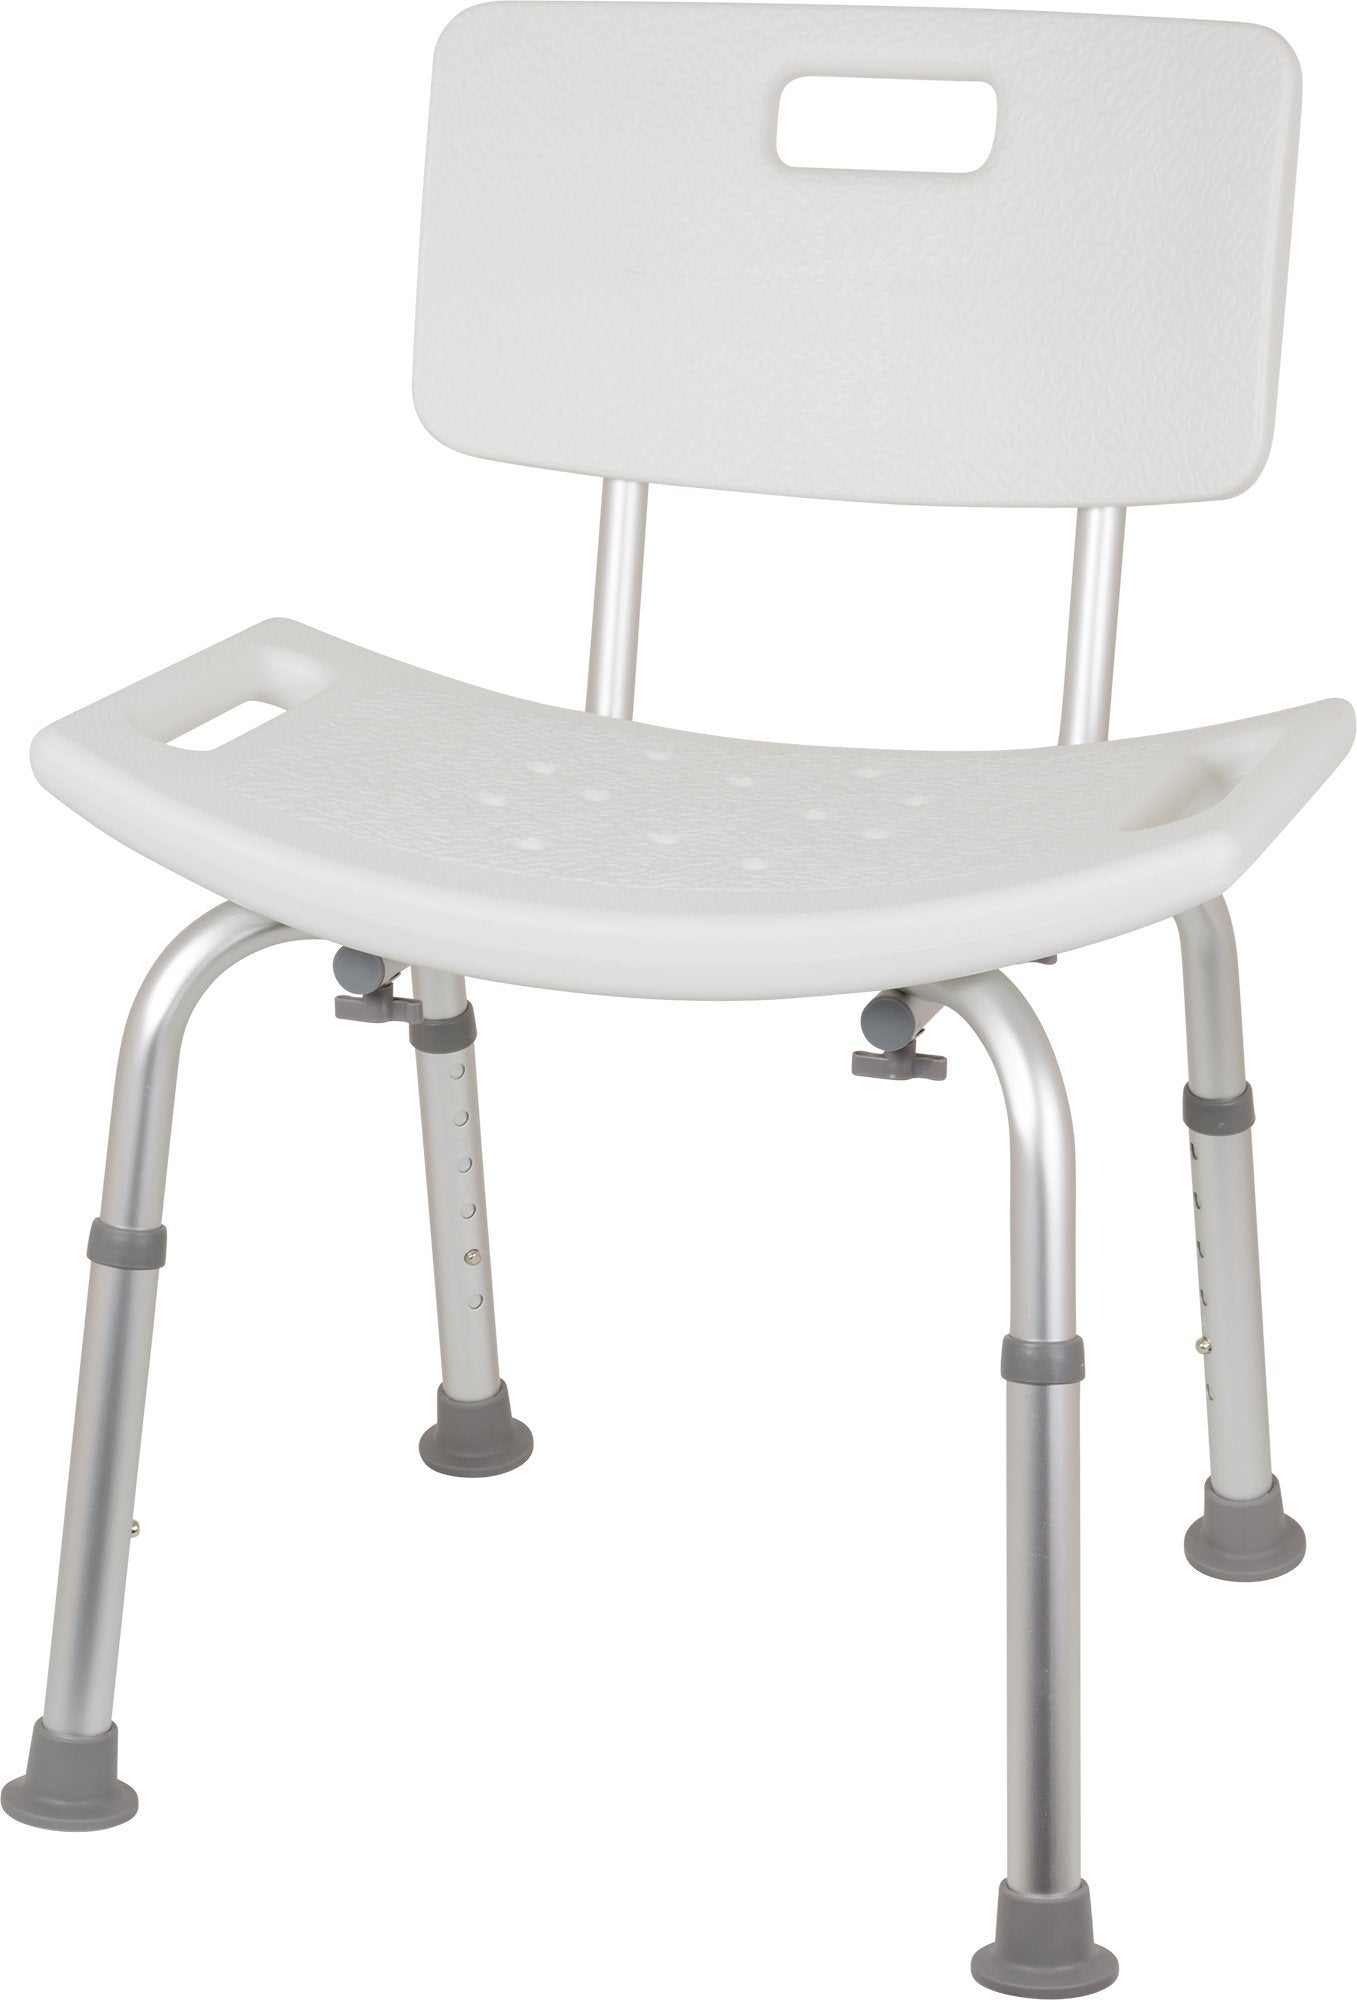 Bariatric Shower Chair with Back, 550lb Weight Capacity - US MED REHAB